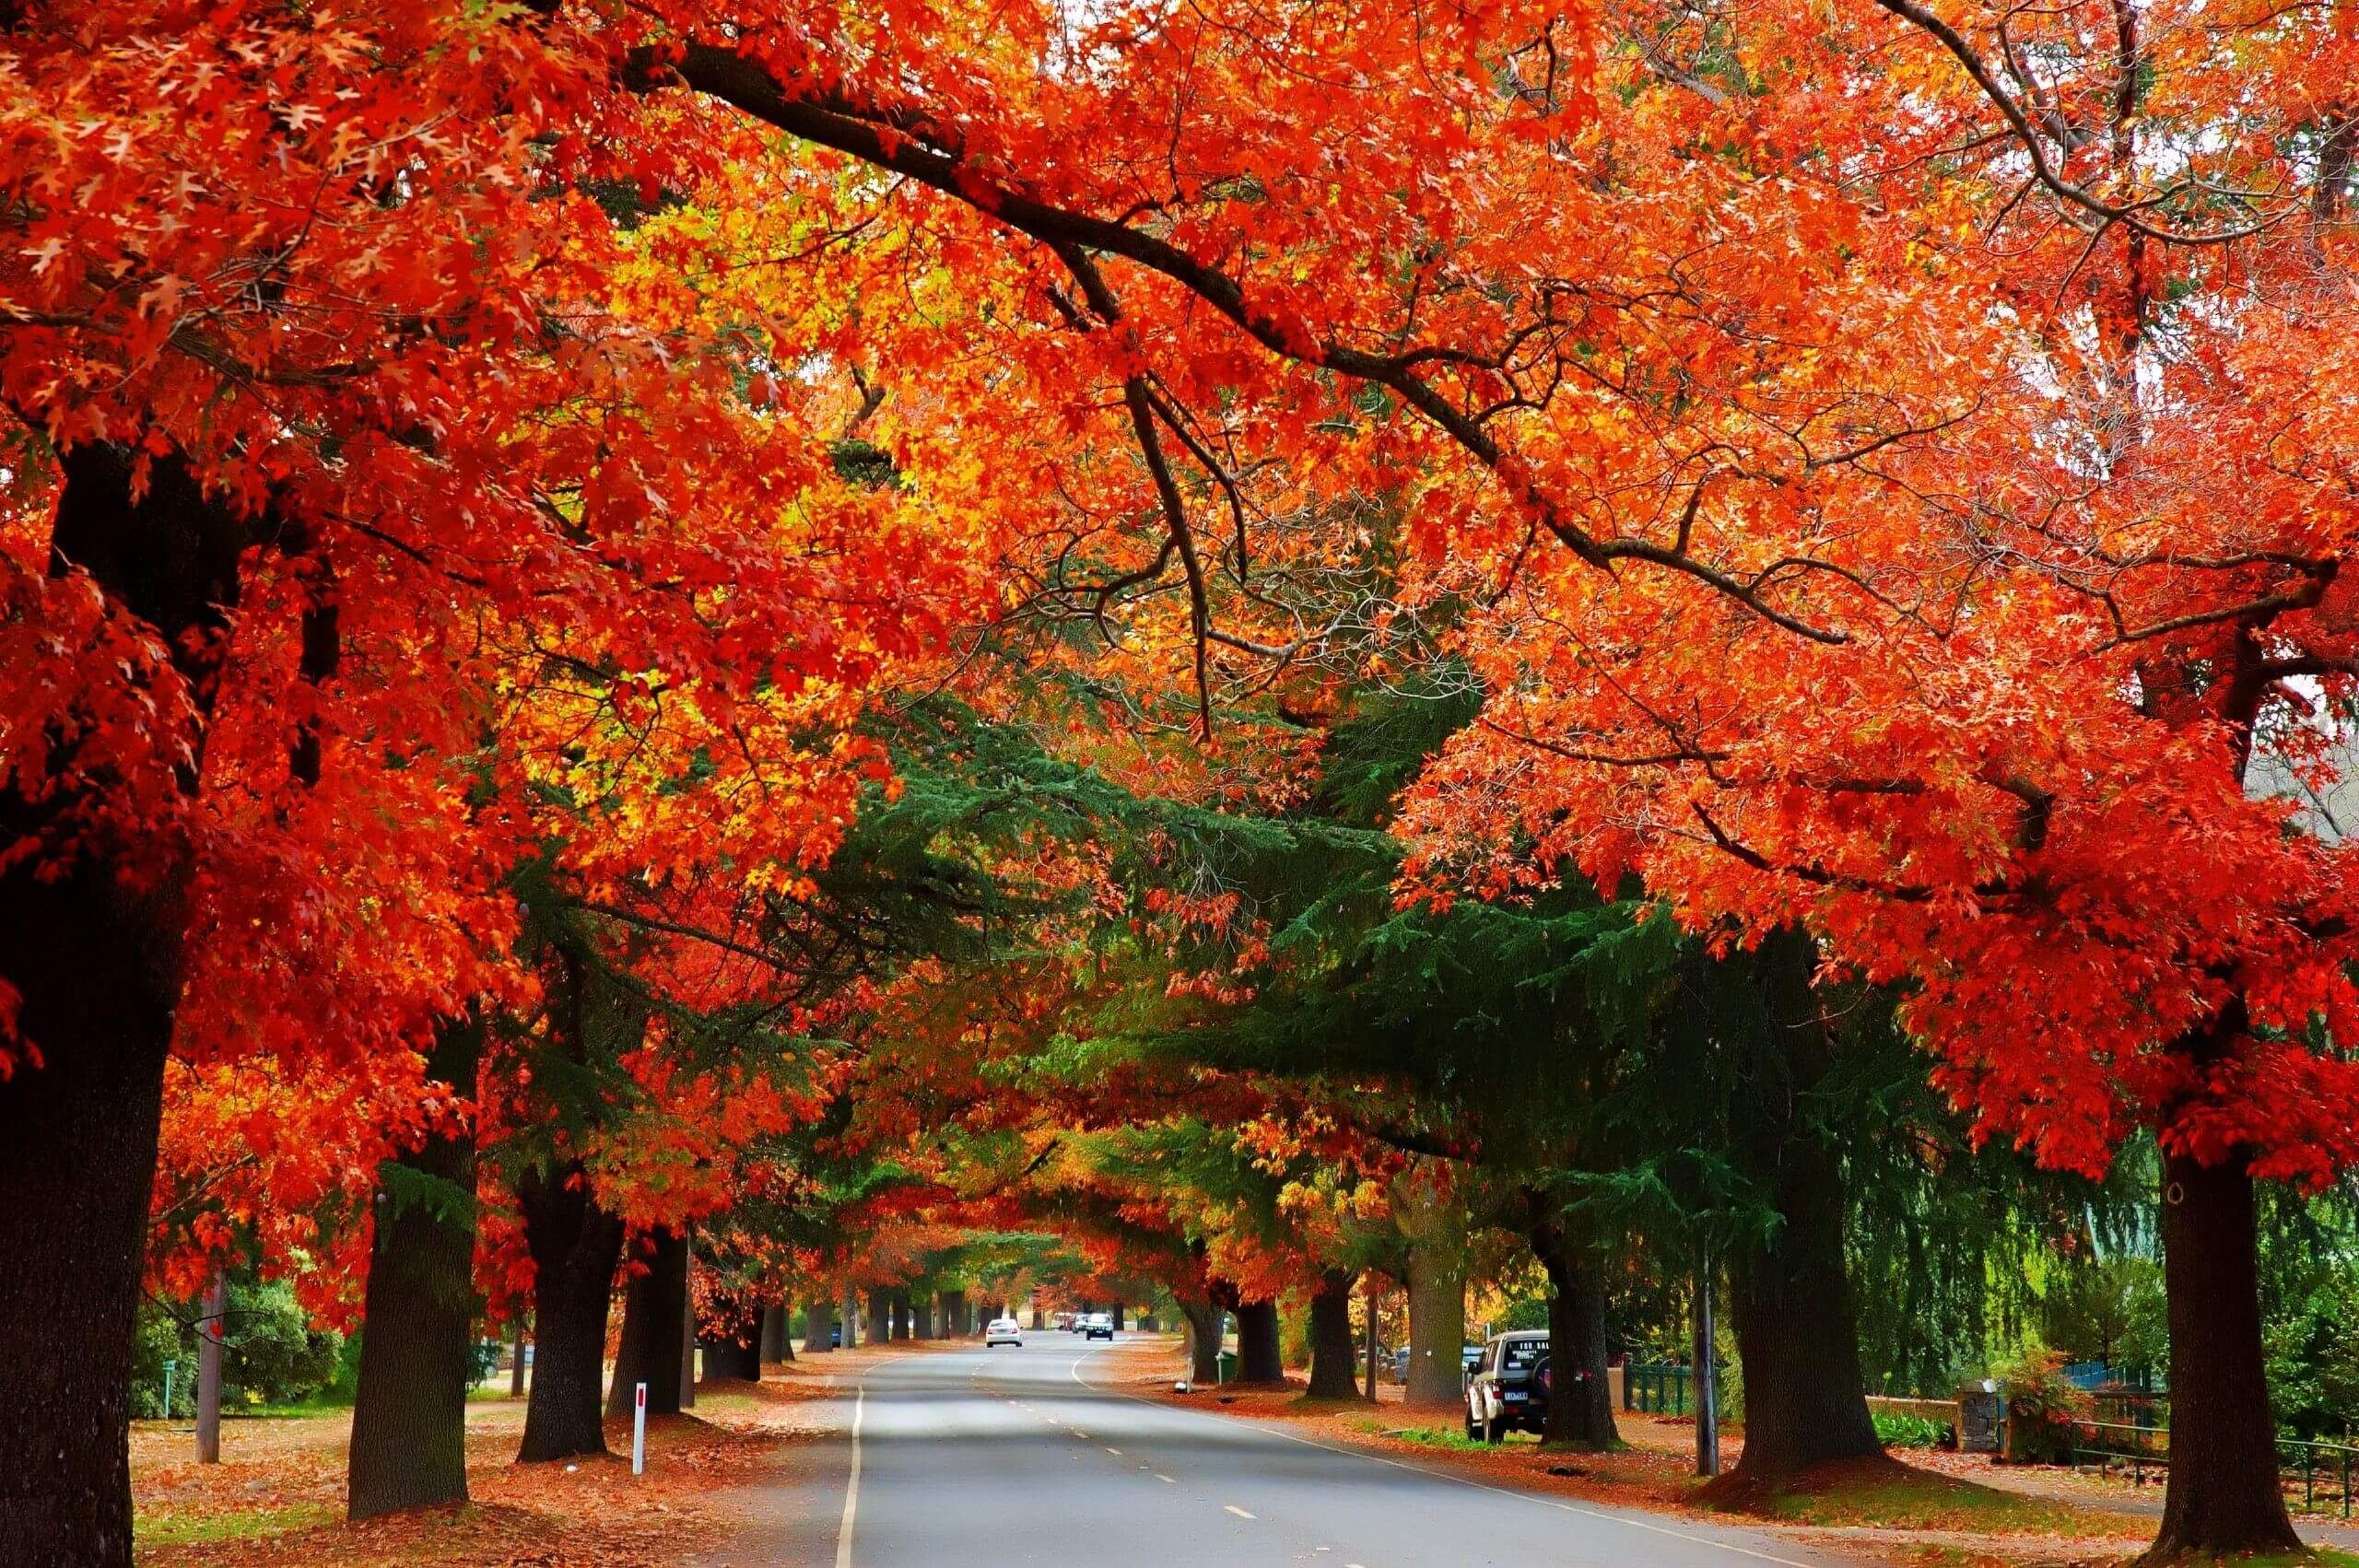 Time To Know Everything About Autumn In Australia Autumn In Australia Victoria Australia Scenery